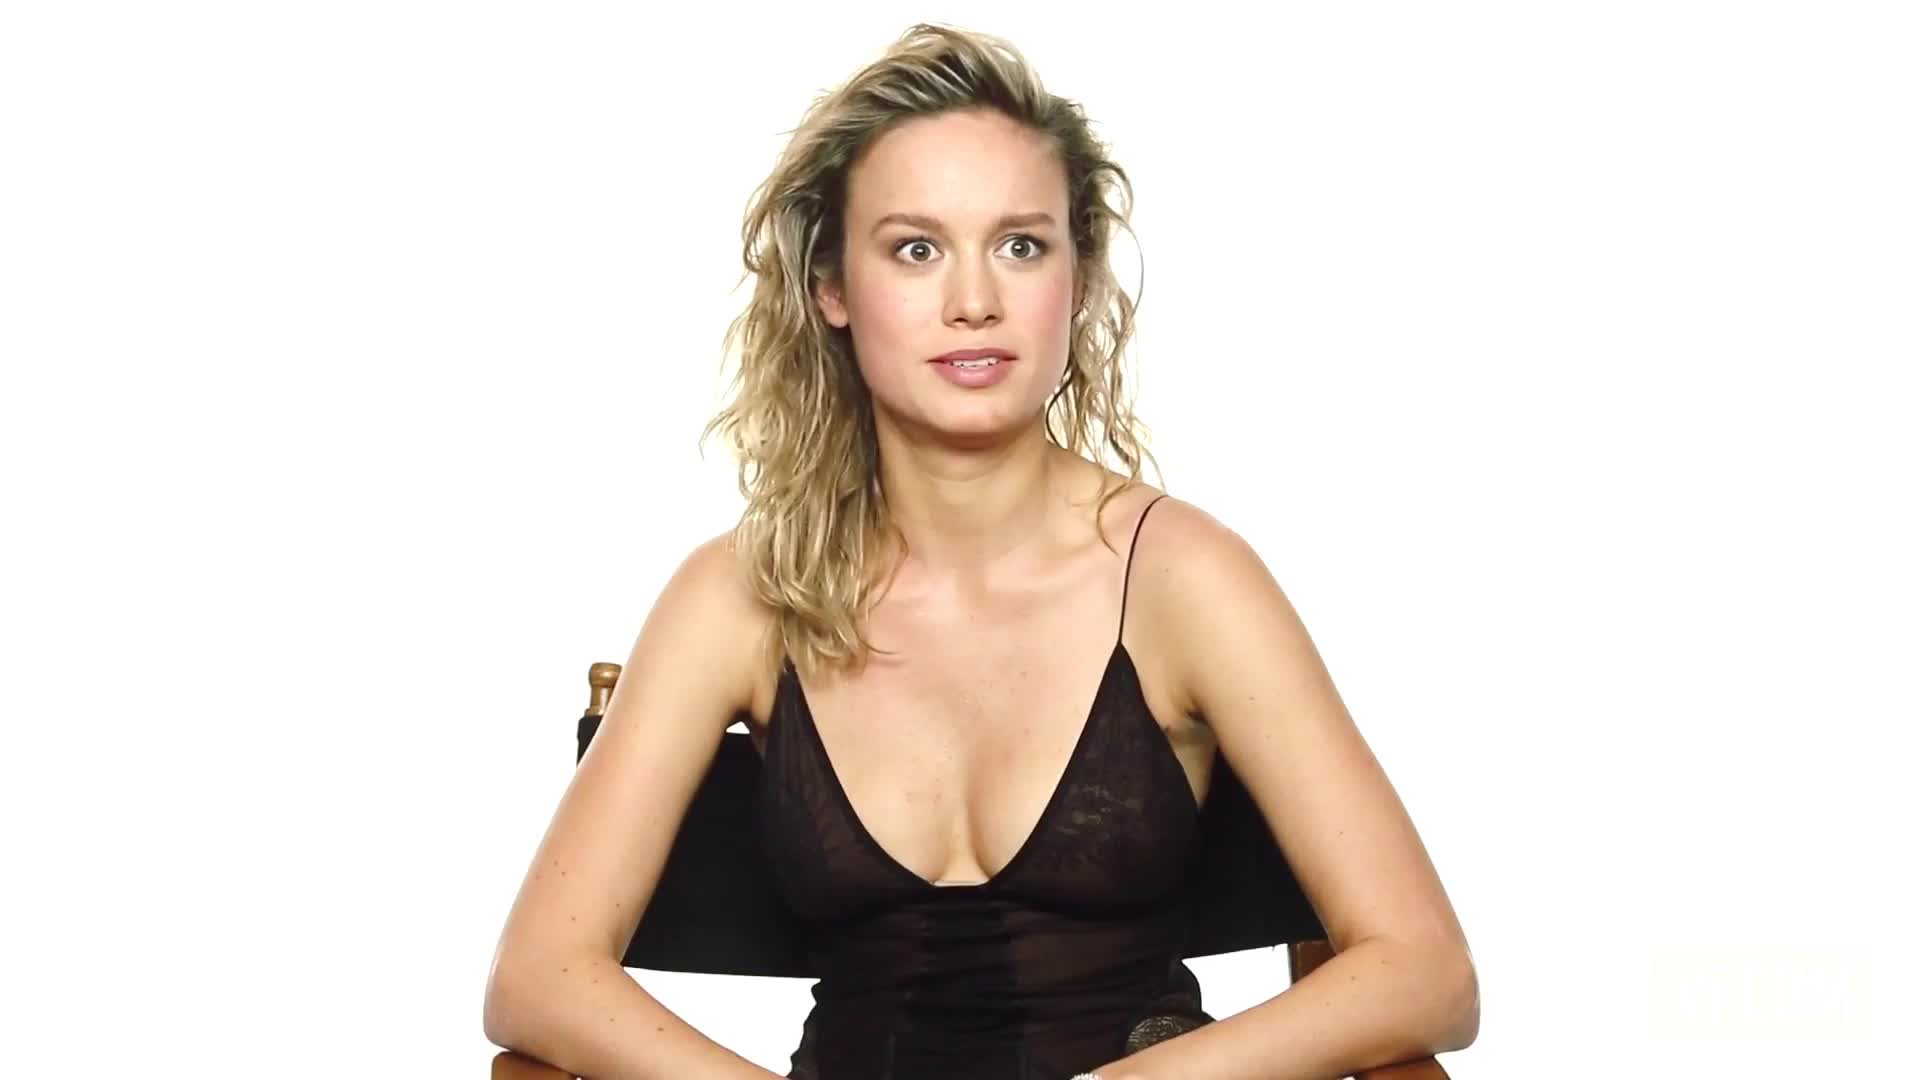 Brie Larson sexy during candid interview